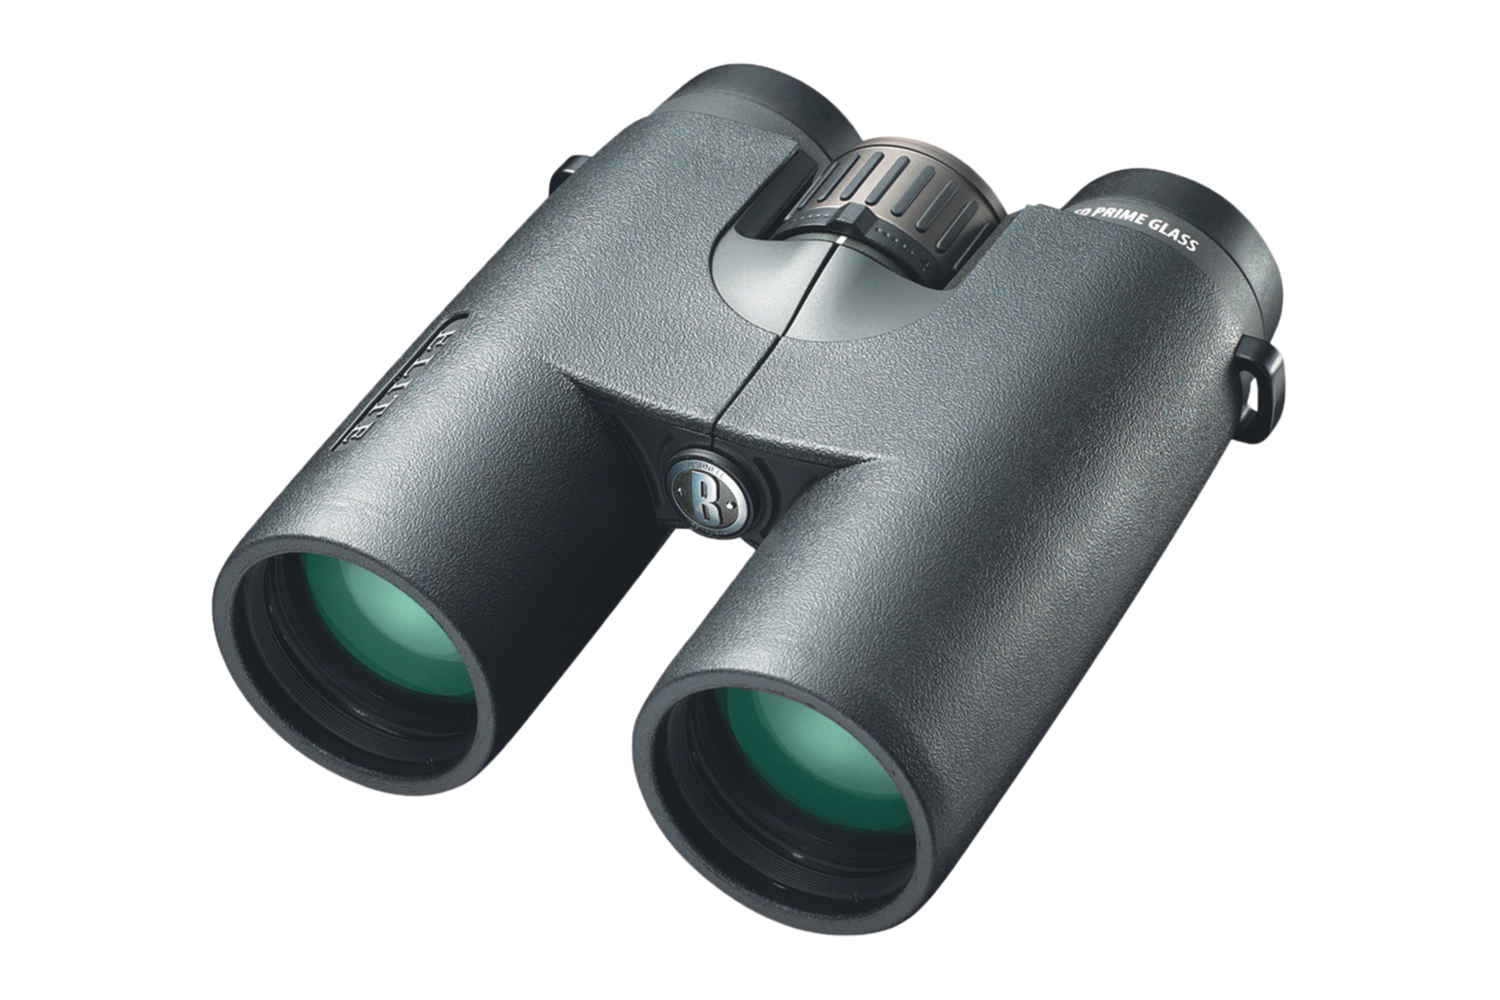 Бинокль Bushnell ELITE 10x42 бинокль bushnell engage 12x50